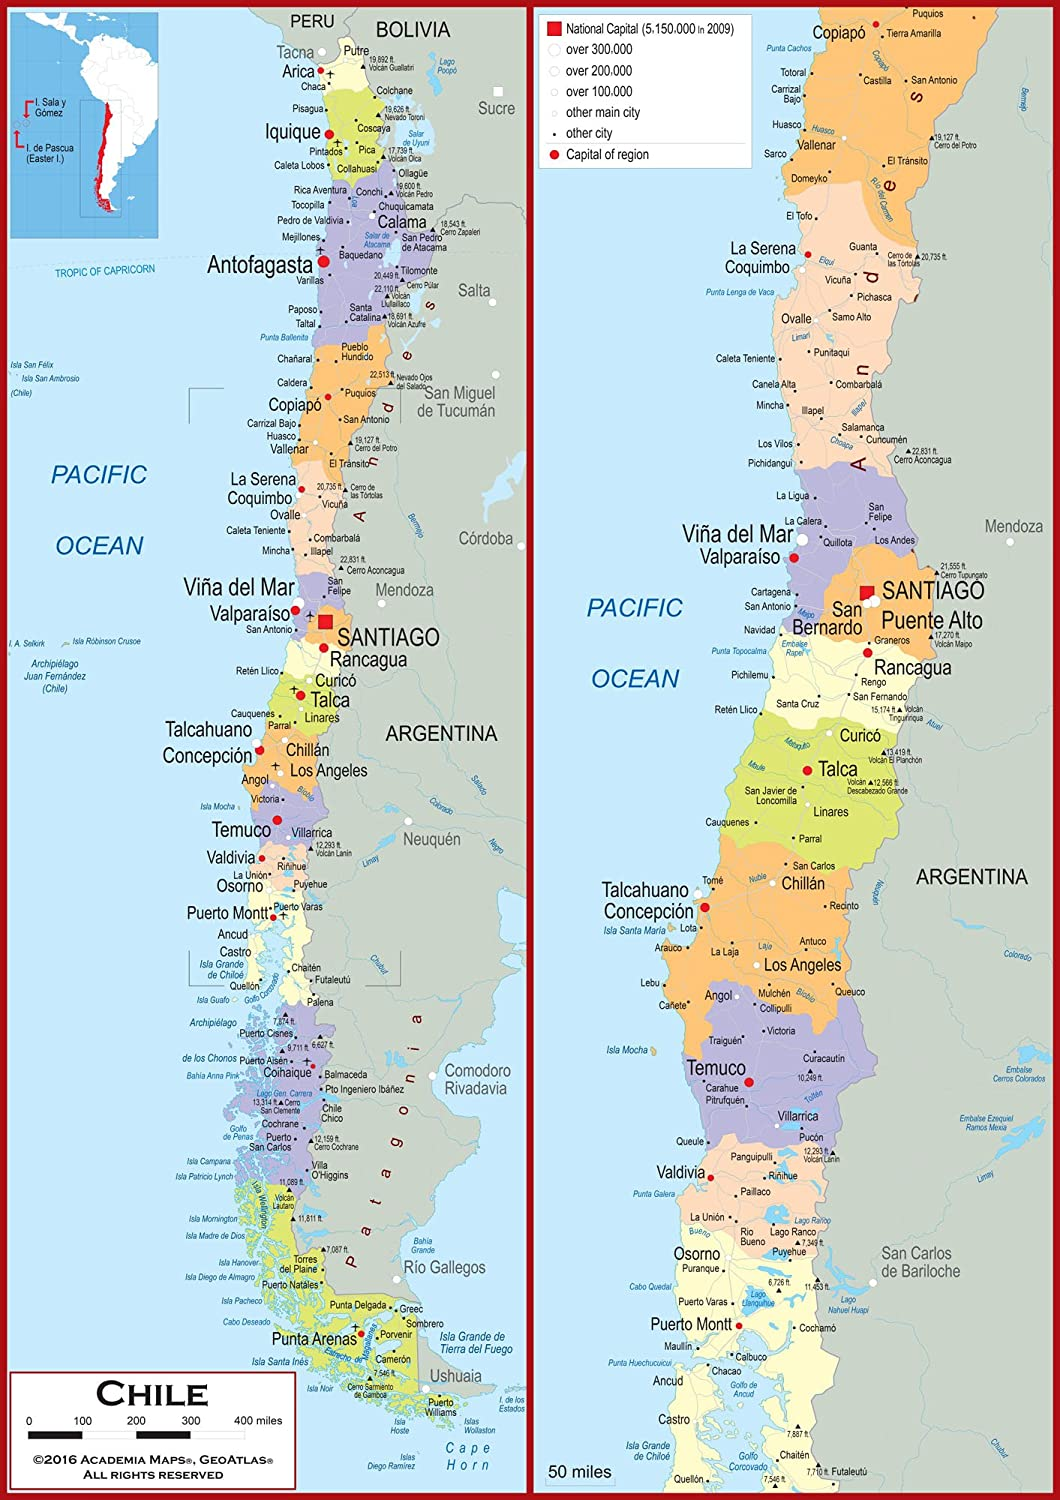 Amazon.com : Academia Maps - Wall Map of Chile - Fully ... on barbados cities map, trinidad cities map, persia cities map, latvia cities map, united states of america cities map, tibet cities map, paraguay cities map, ancient near east cities map, chile coast beach, south sudan cities map, serbia cities map, guinea cities map, baffin island cities map, guam cities map, luxembourg cities map, antarctic cities map, chad cities map, senegal cities map, belarus cities map, slovakia cities map,